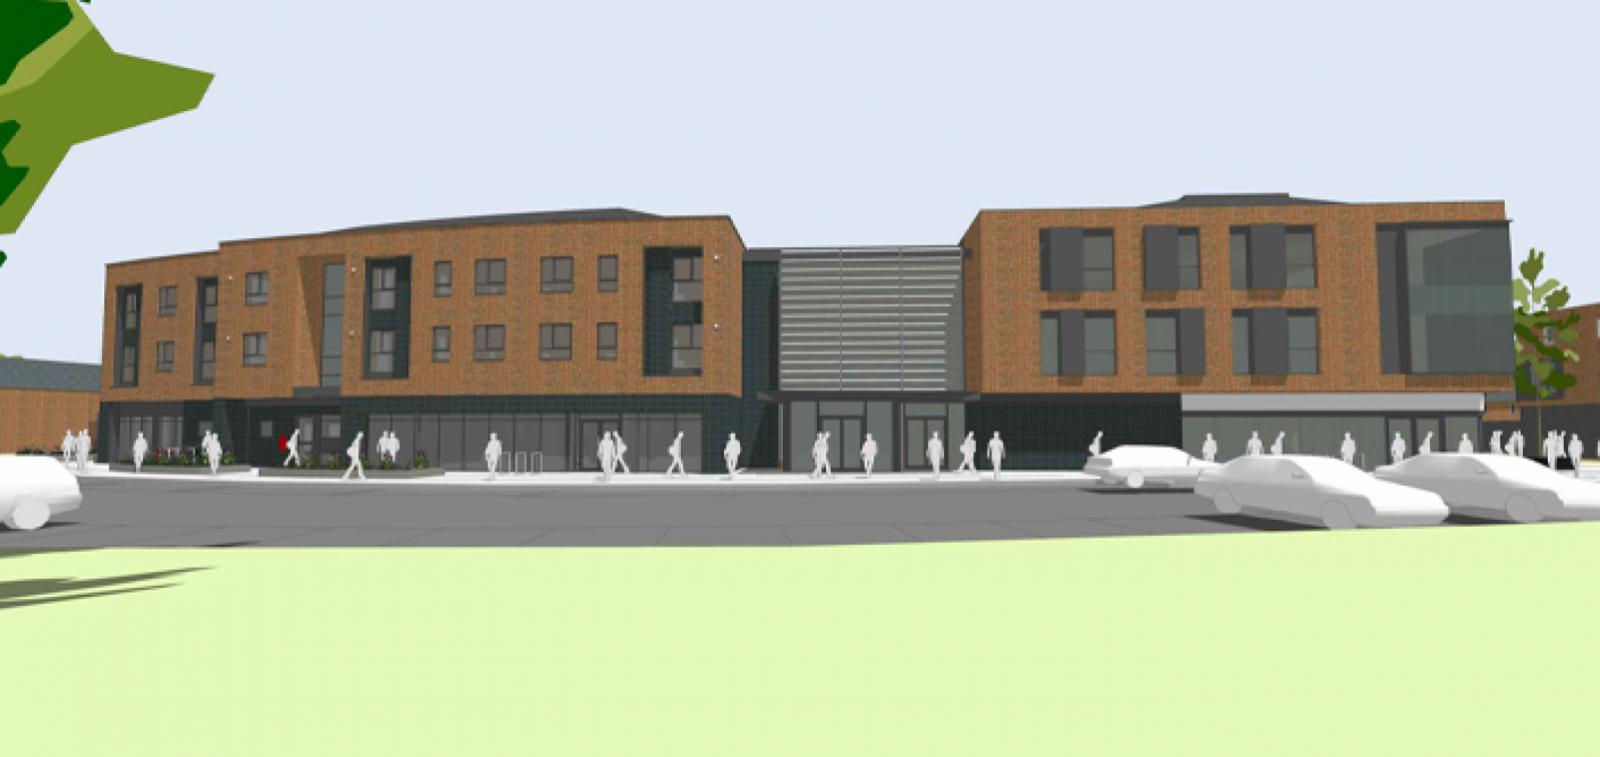 Blacon Health Centre and apartments artist rendering